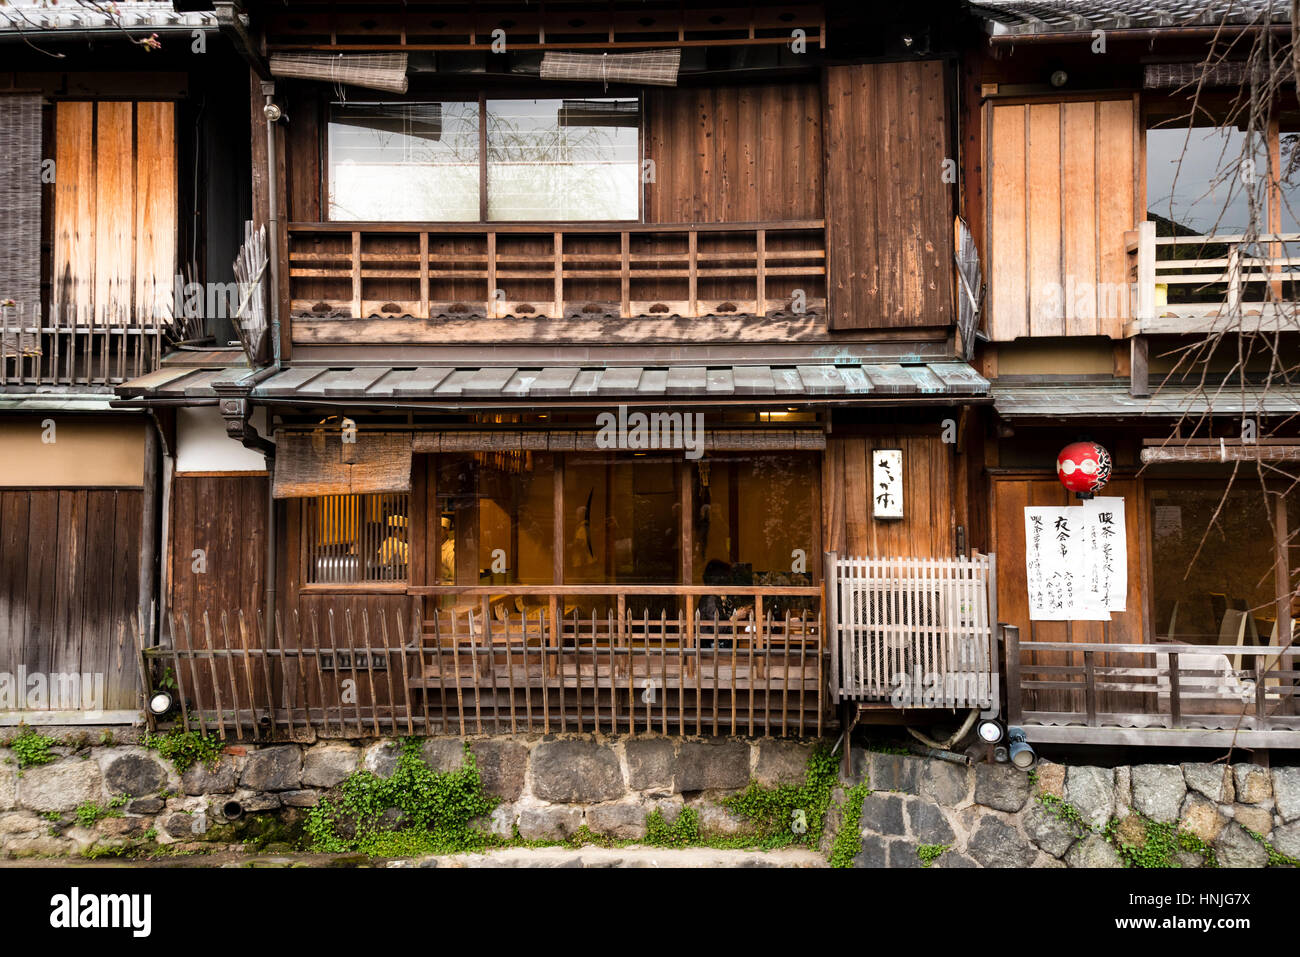 Japanese Restaurant Architecture High Resolution Stock Photography And Images Alamy